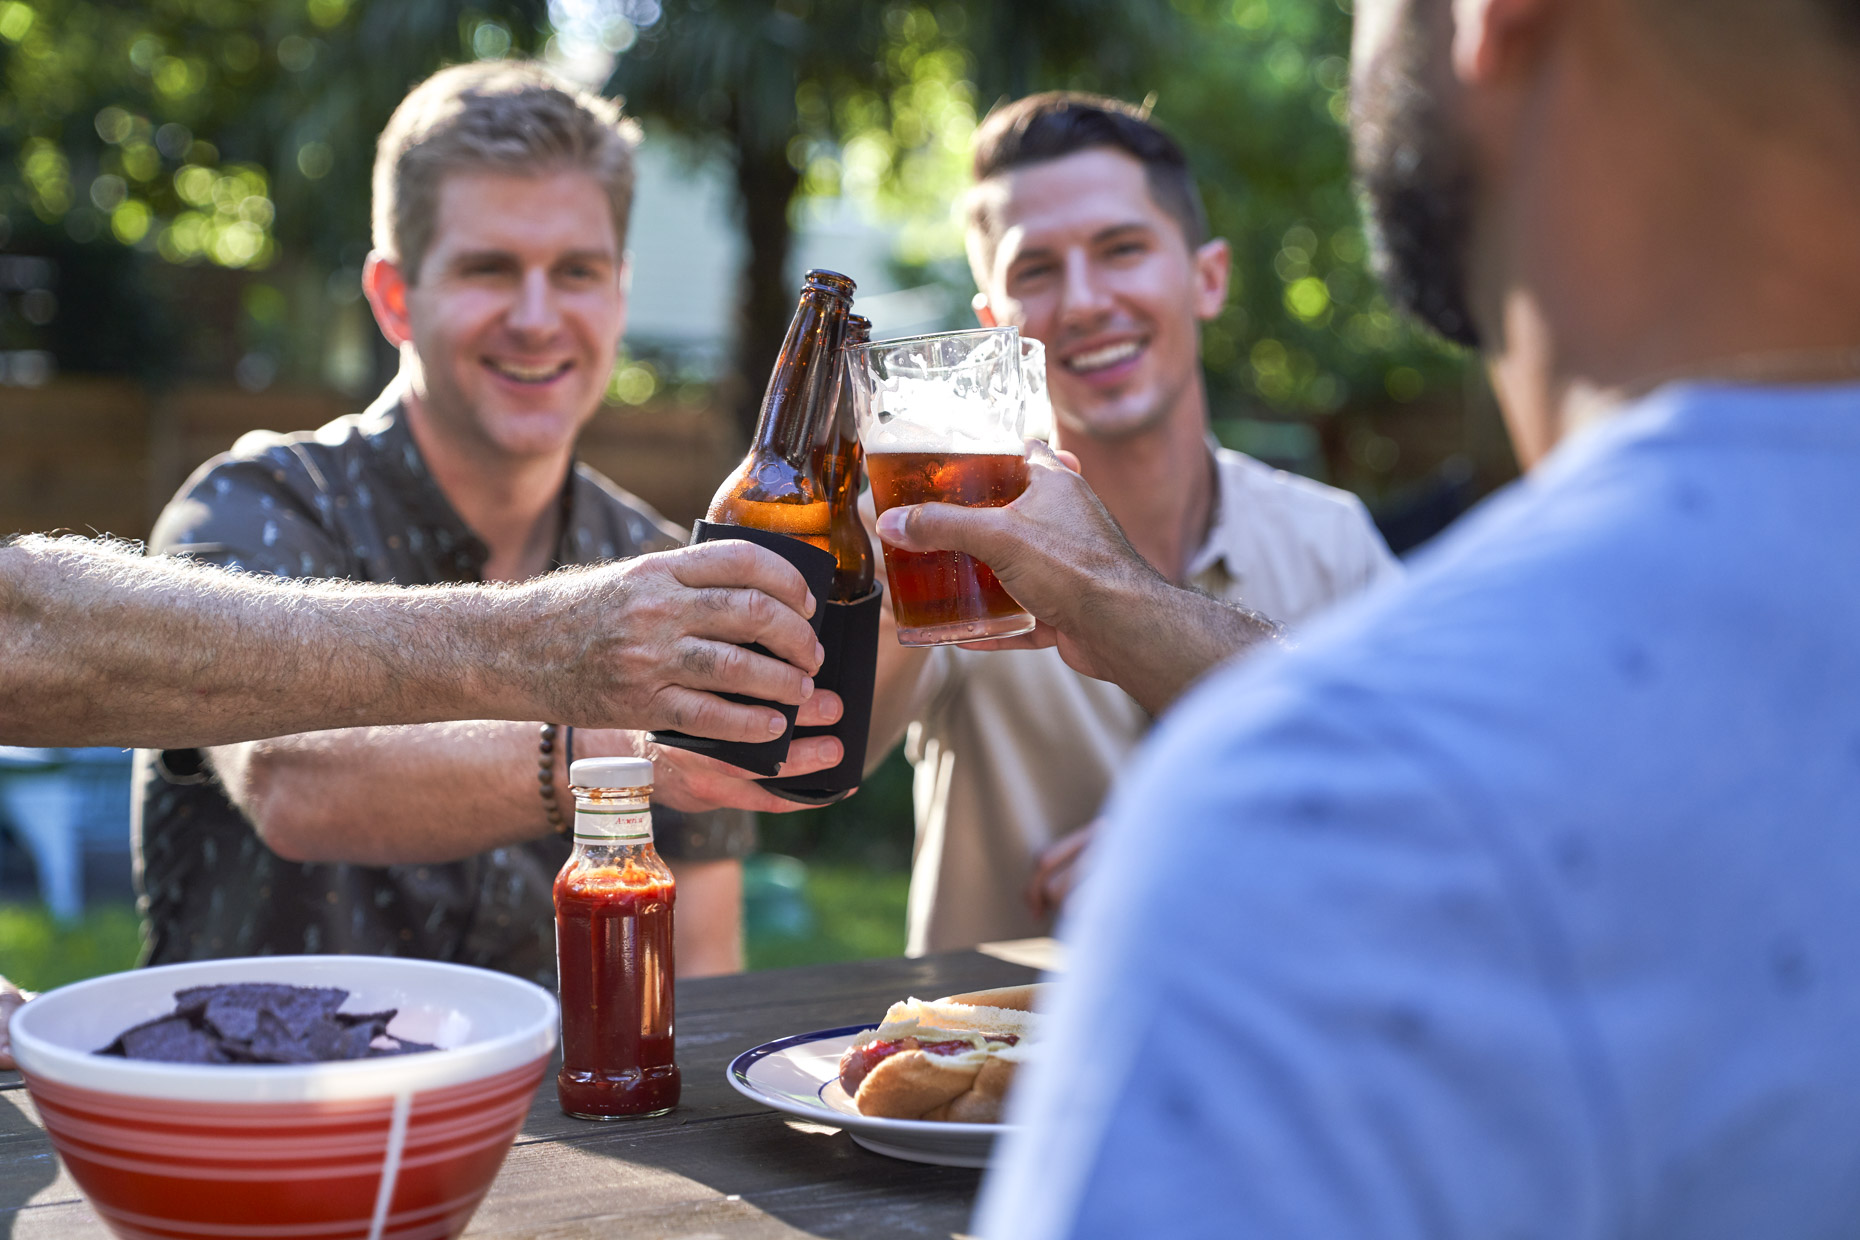 Men toasting beer at backyard bbq